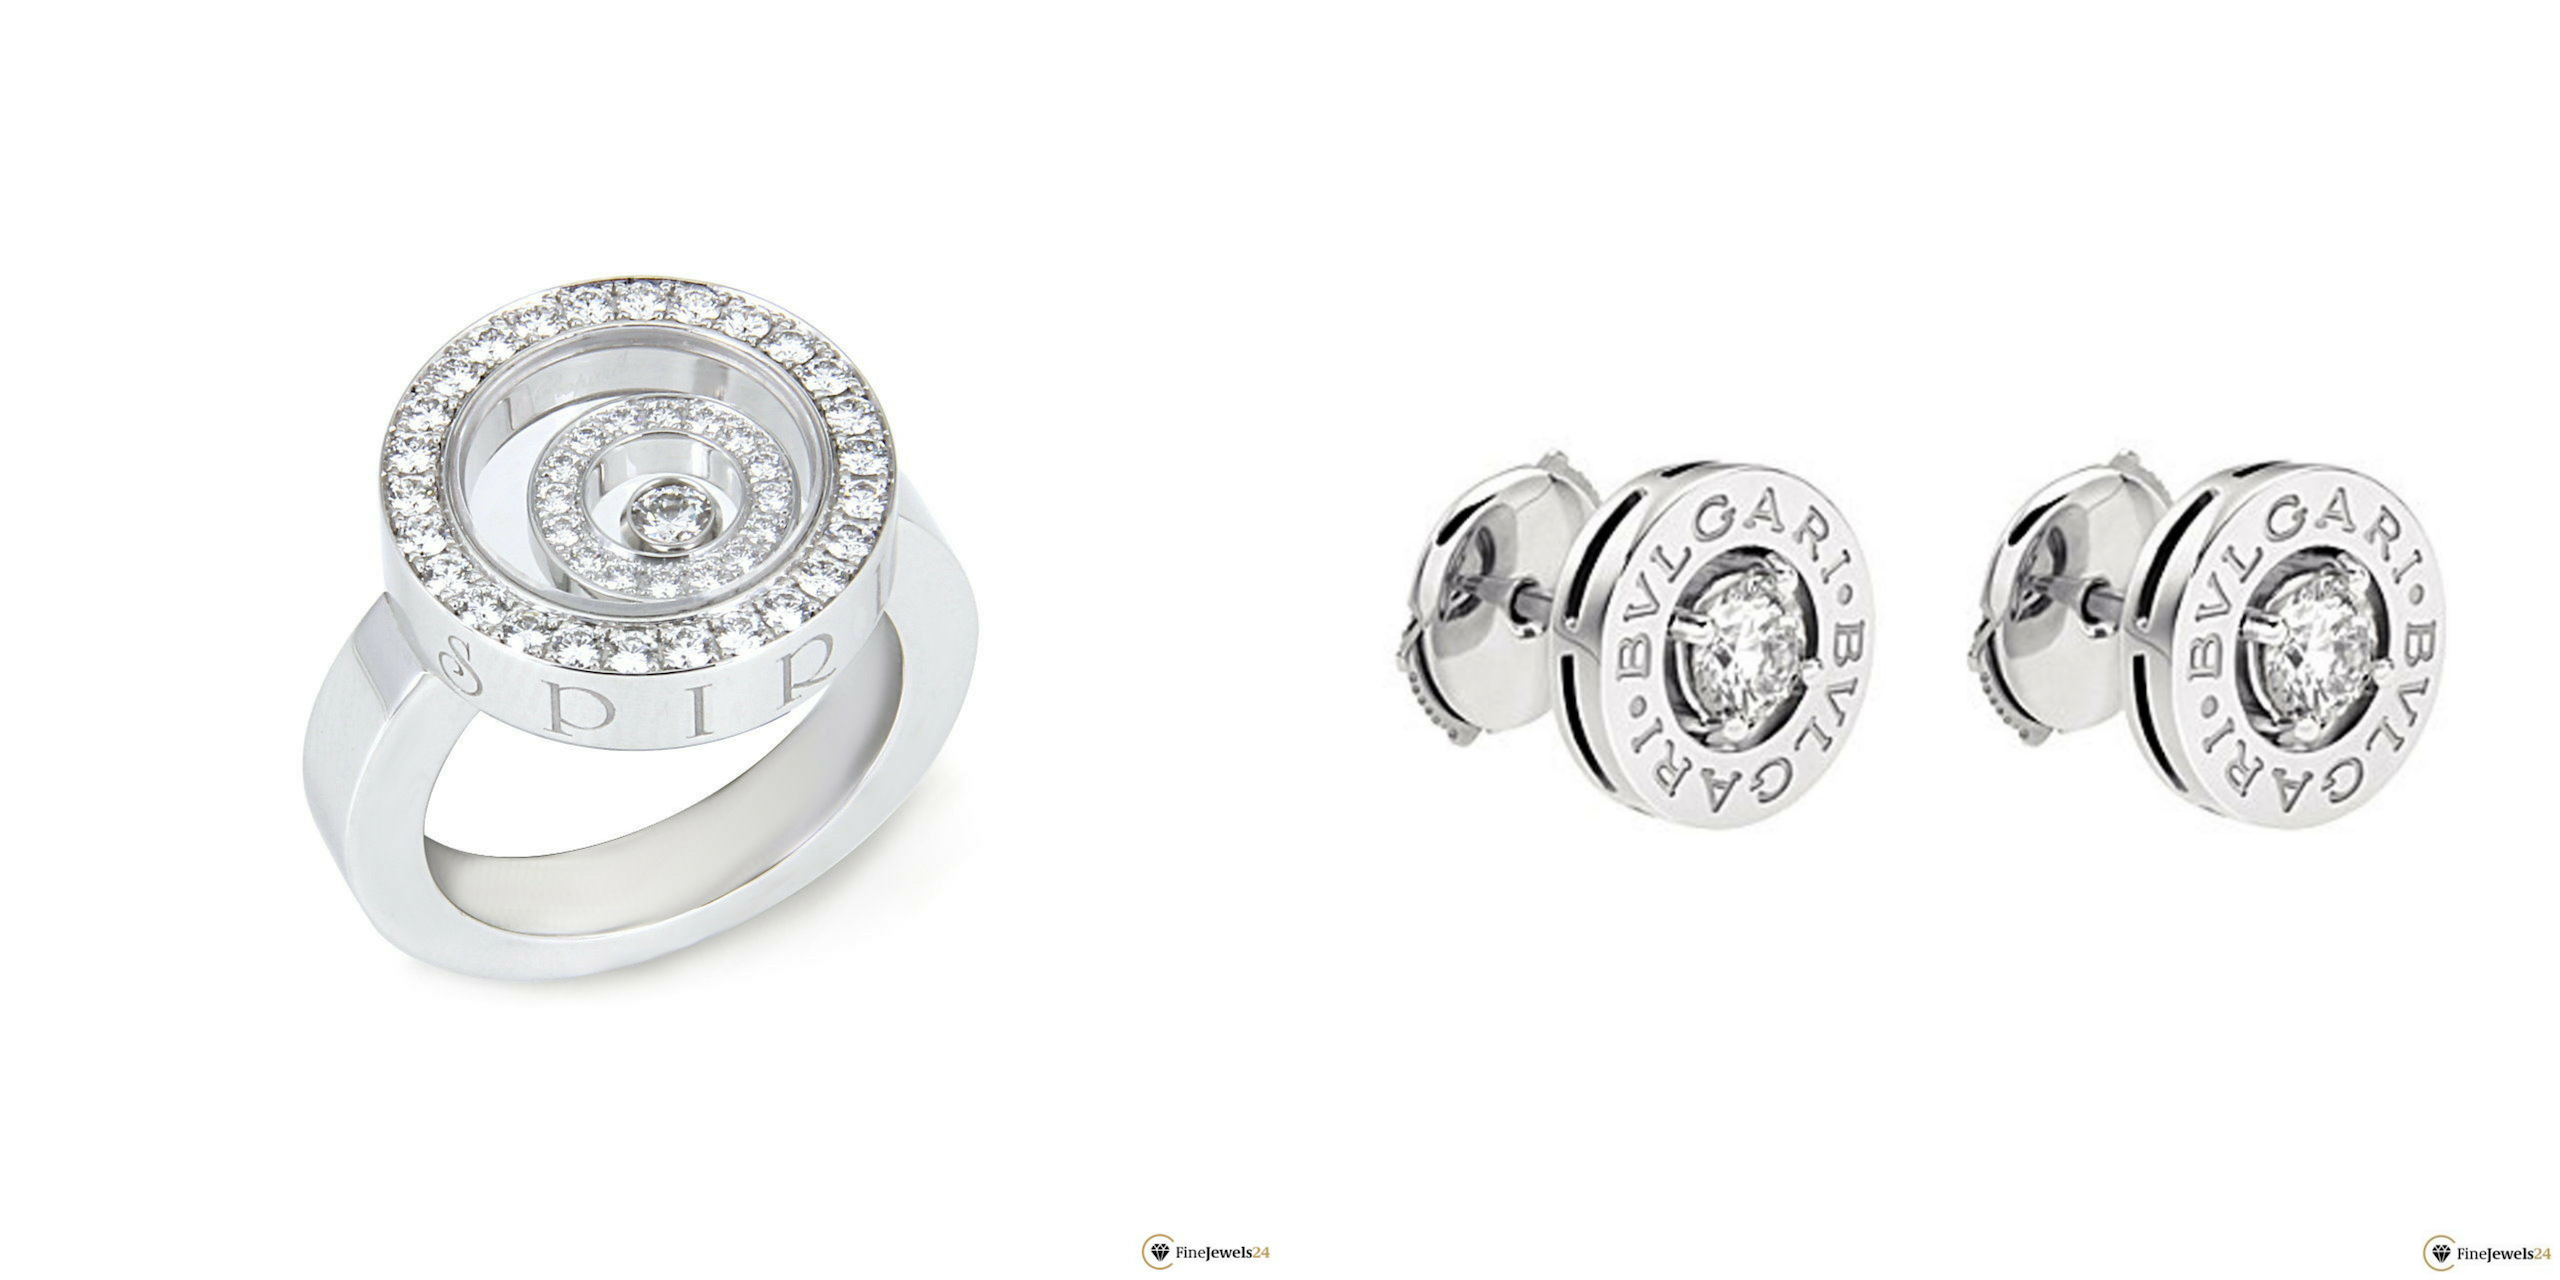 Diamant Ring und Diamant Ohrstecker in einer Collage